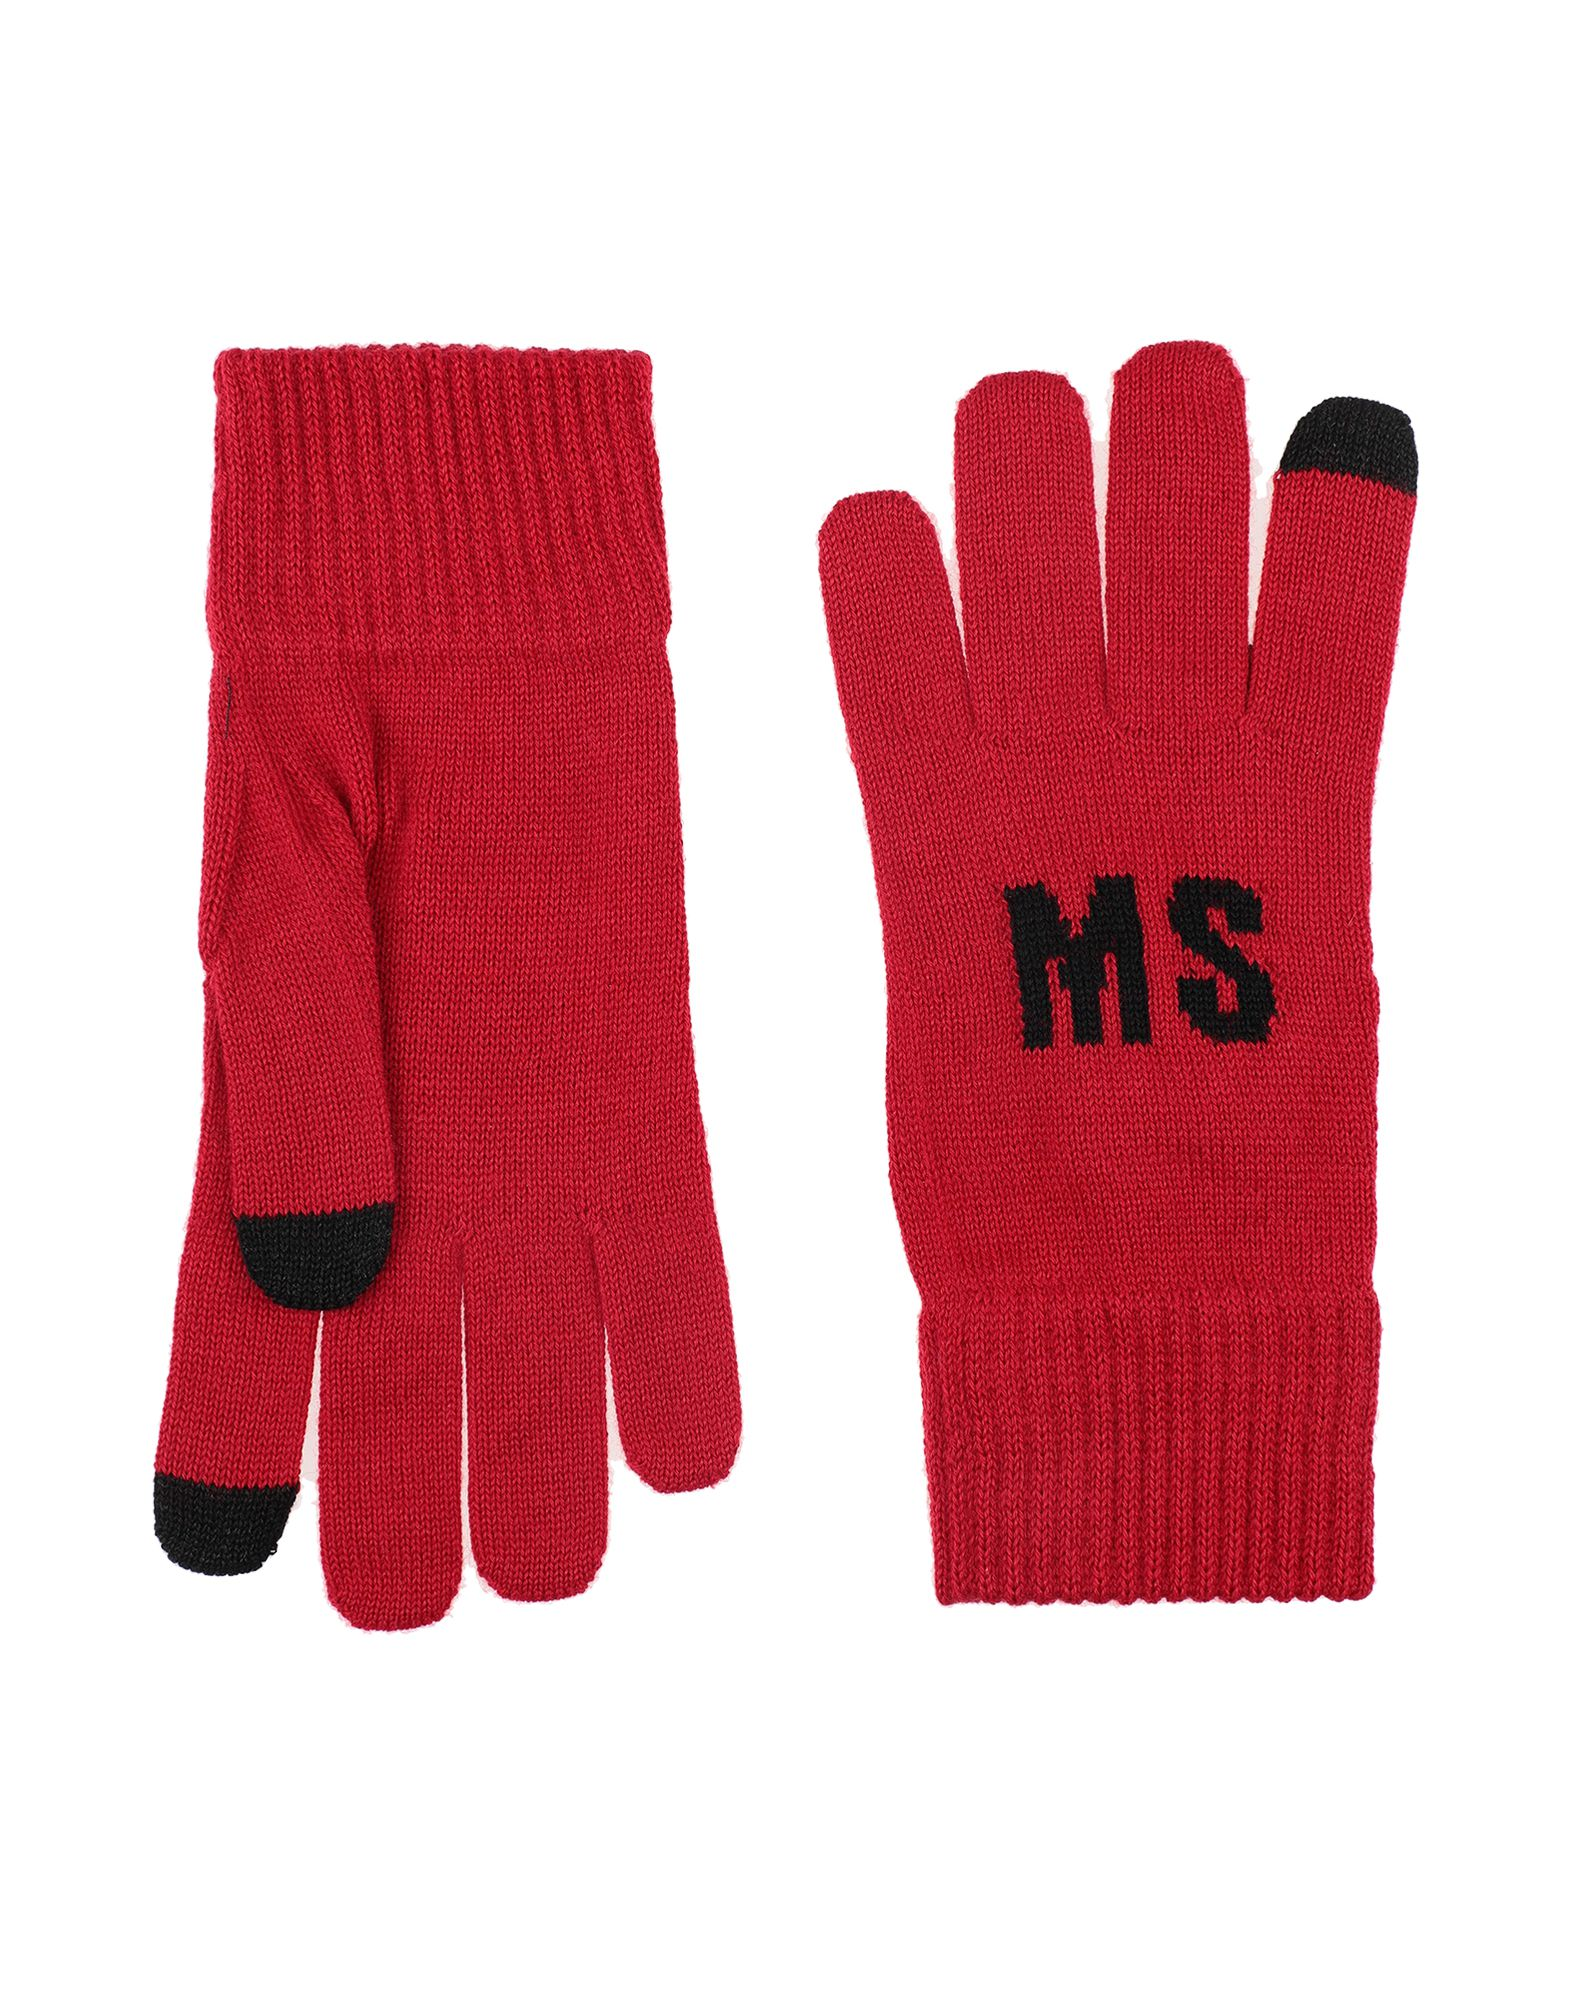 MSGM Gloves. knitted, logo, solid color. 50% Wool, 50% Acrylic